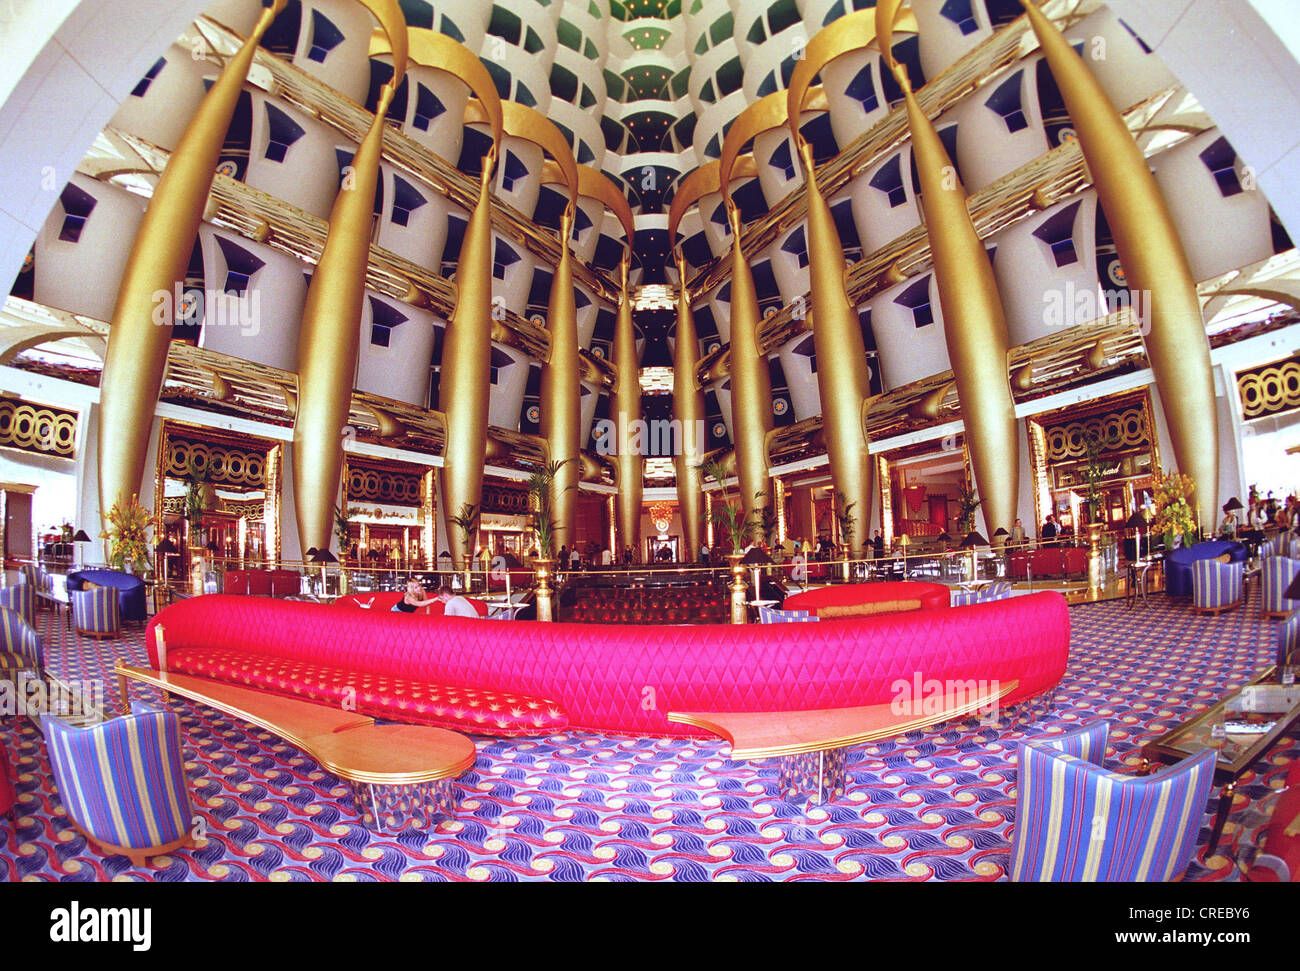 Burj al arab the most expensive hotel in the world dubai for The most expensive hotel in the world